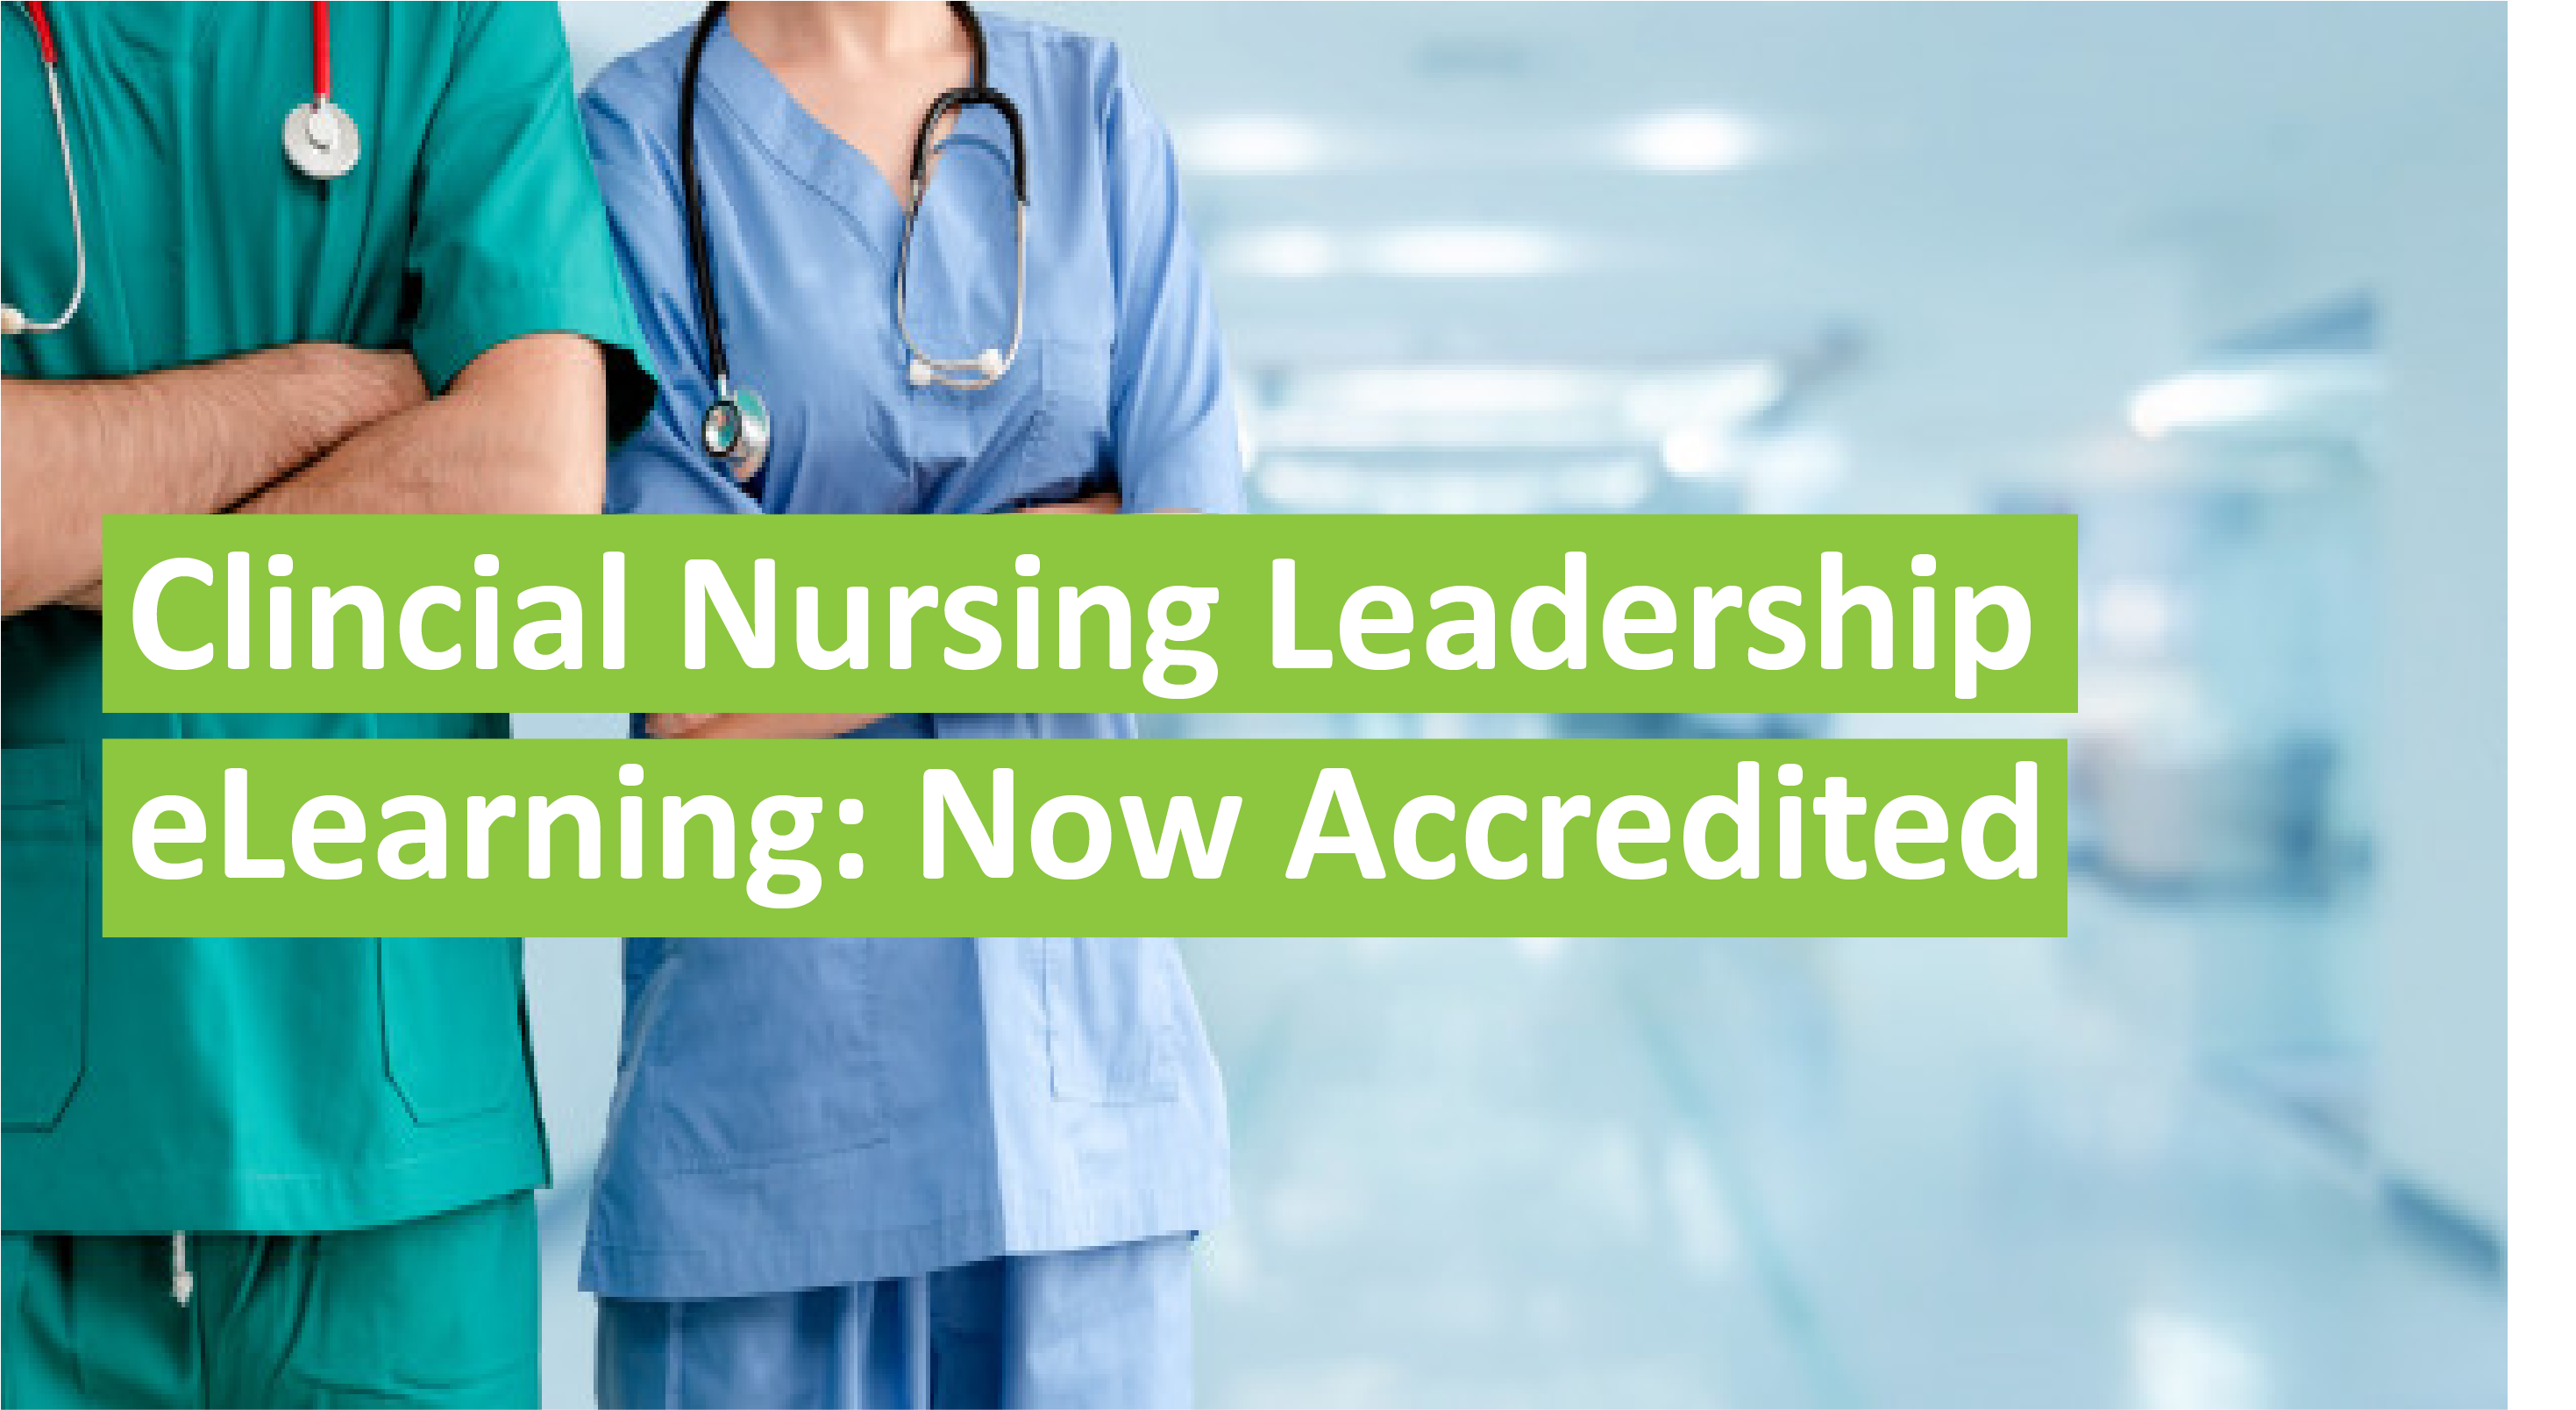 CNL eLearning now accredited